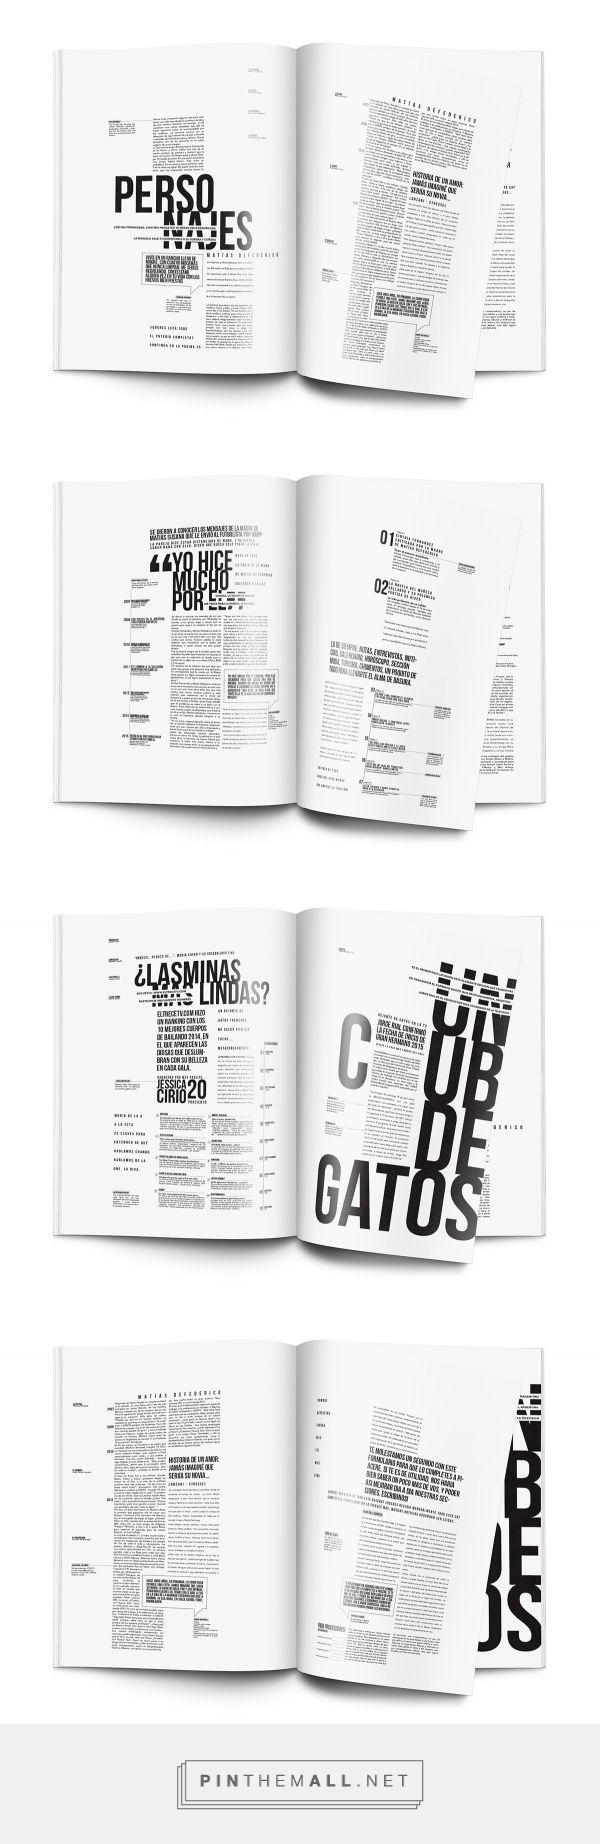 Editorial I longinotti 2- Revista on Behance... - a grouped images picture - Pin Them All